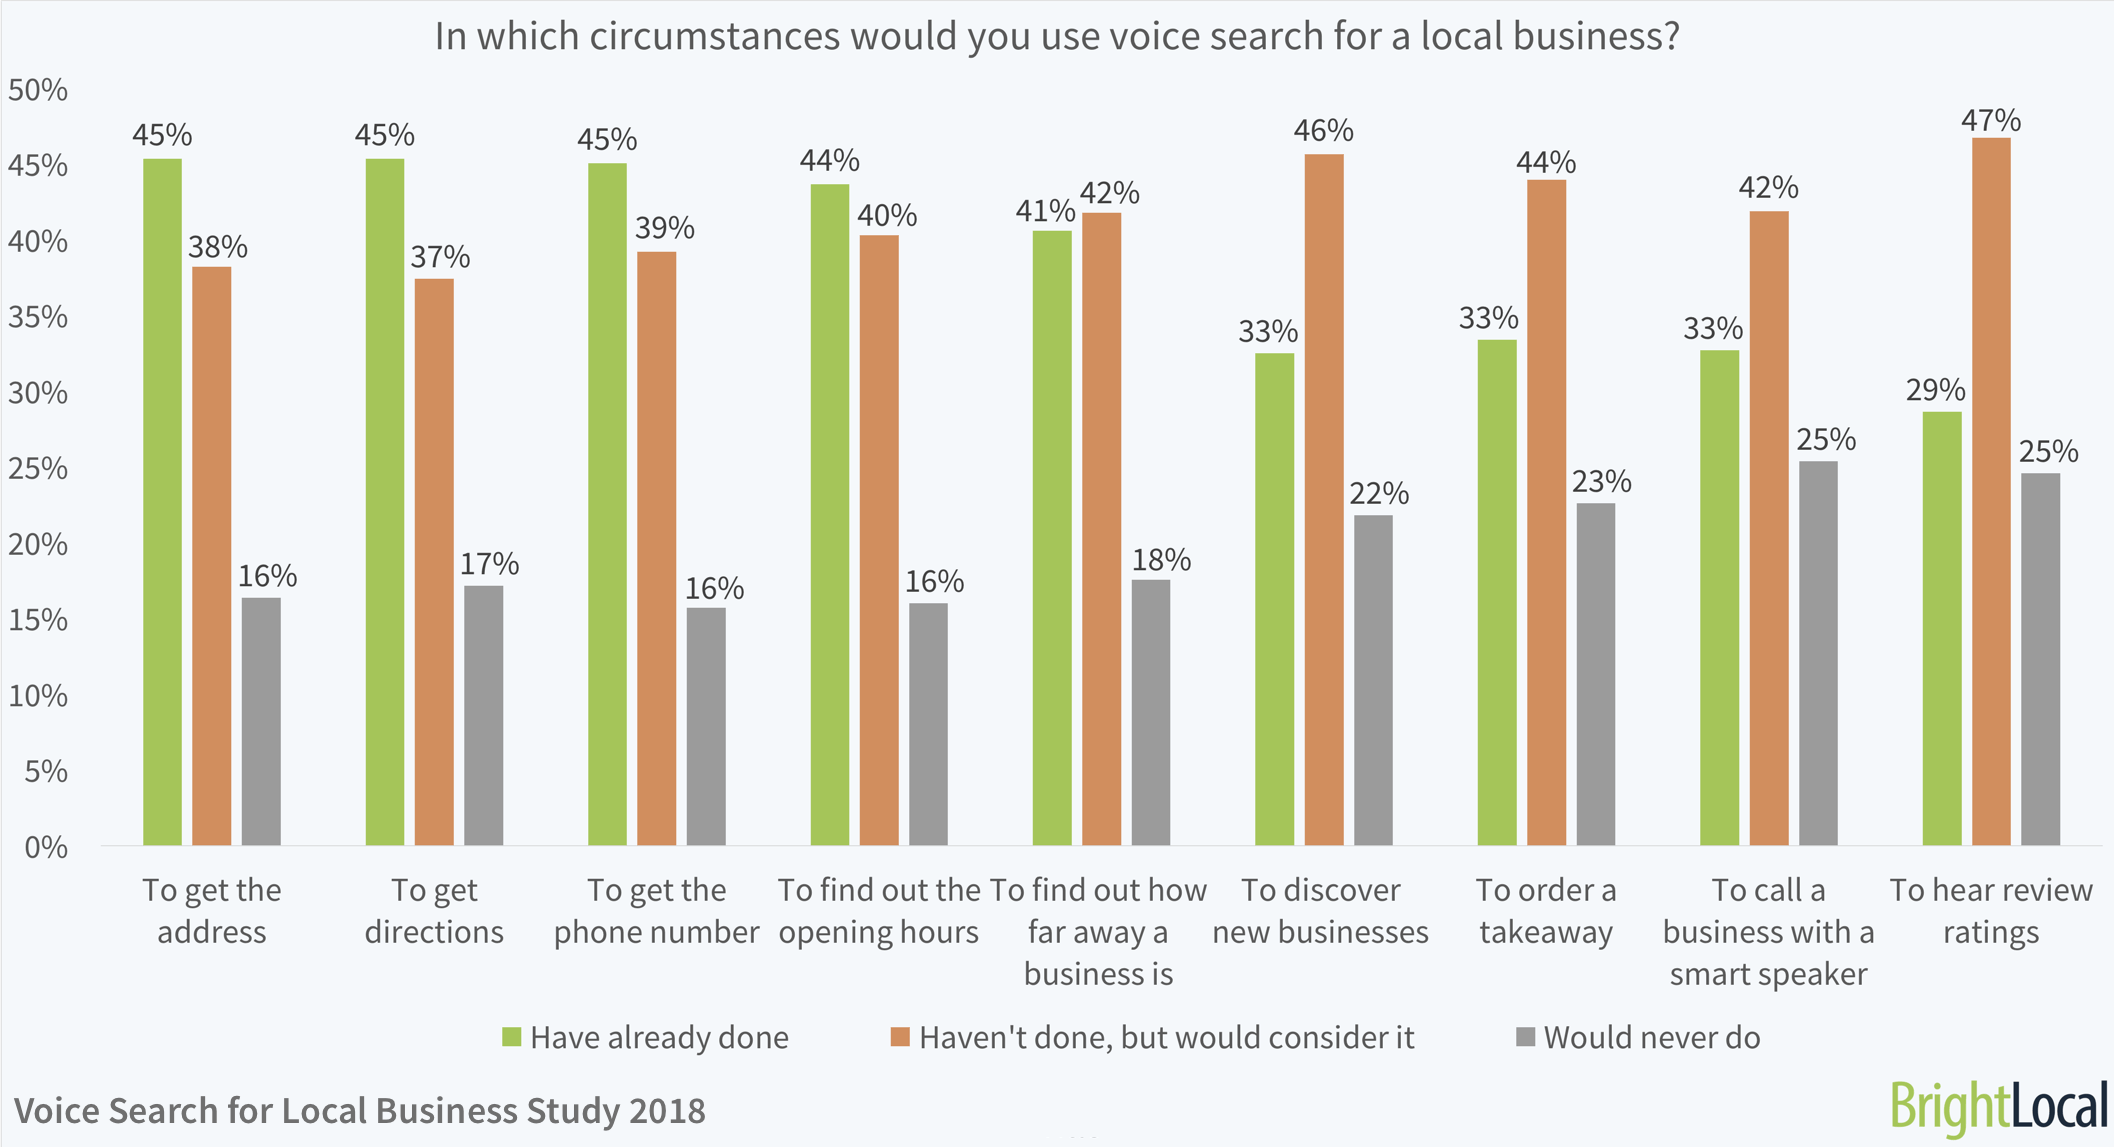 In which circumstances would you use voice search for a local business? | BrightLocal Voice Search for Local Business Study